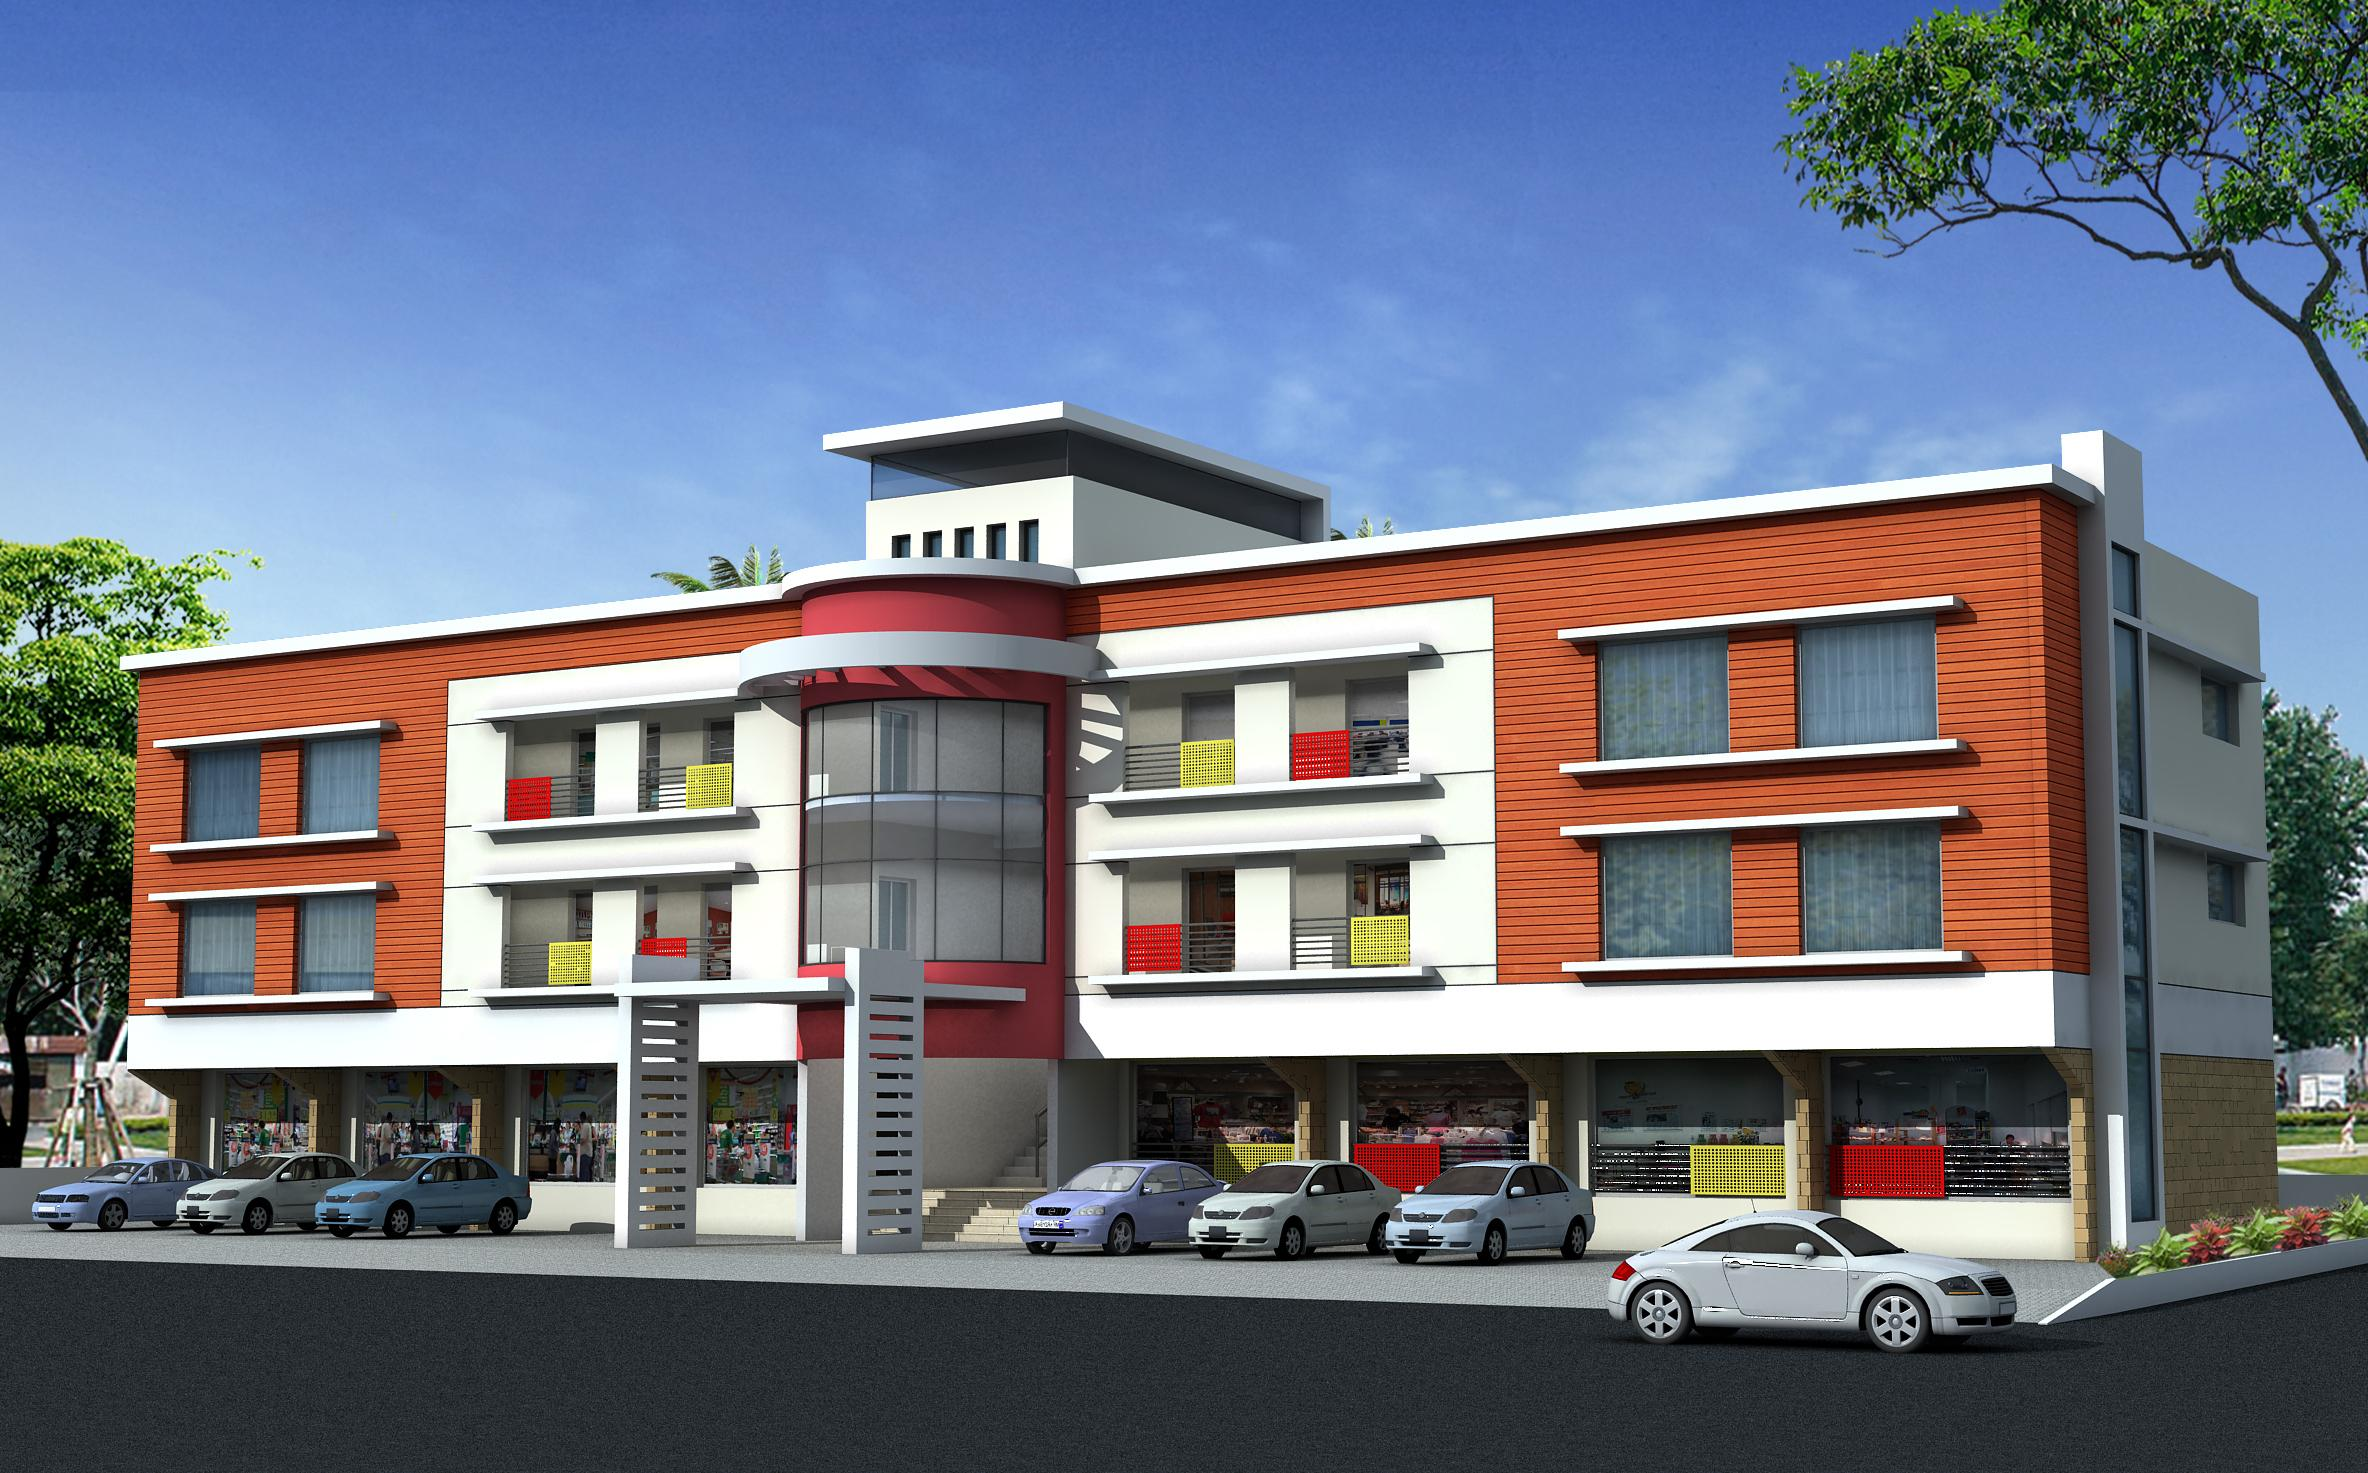 2 storey apartment design exterior interior design for Apartment exterior design philippines